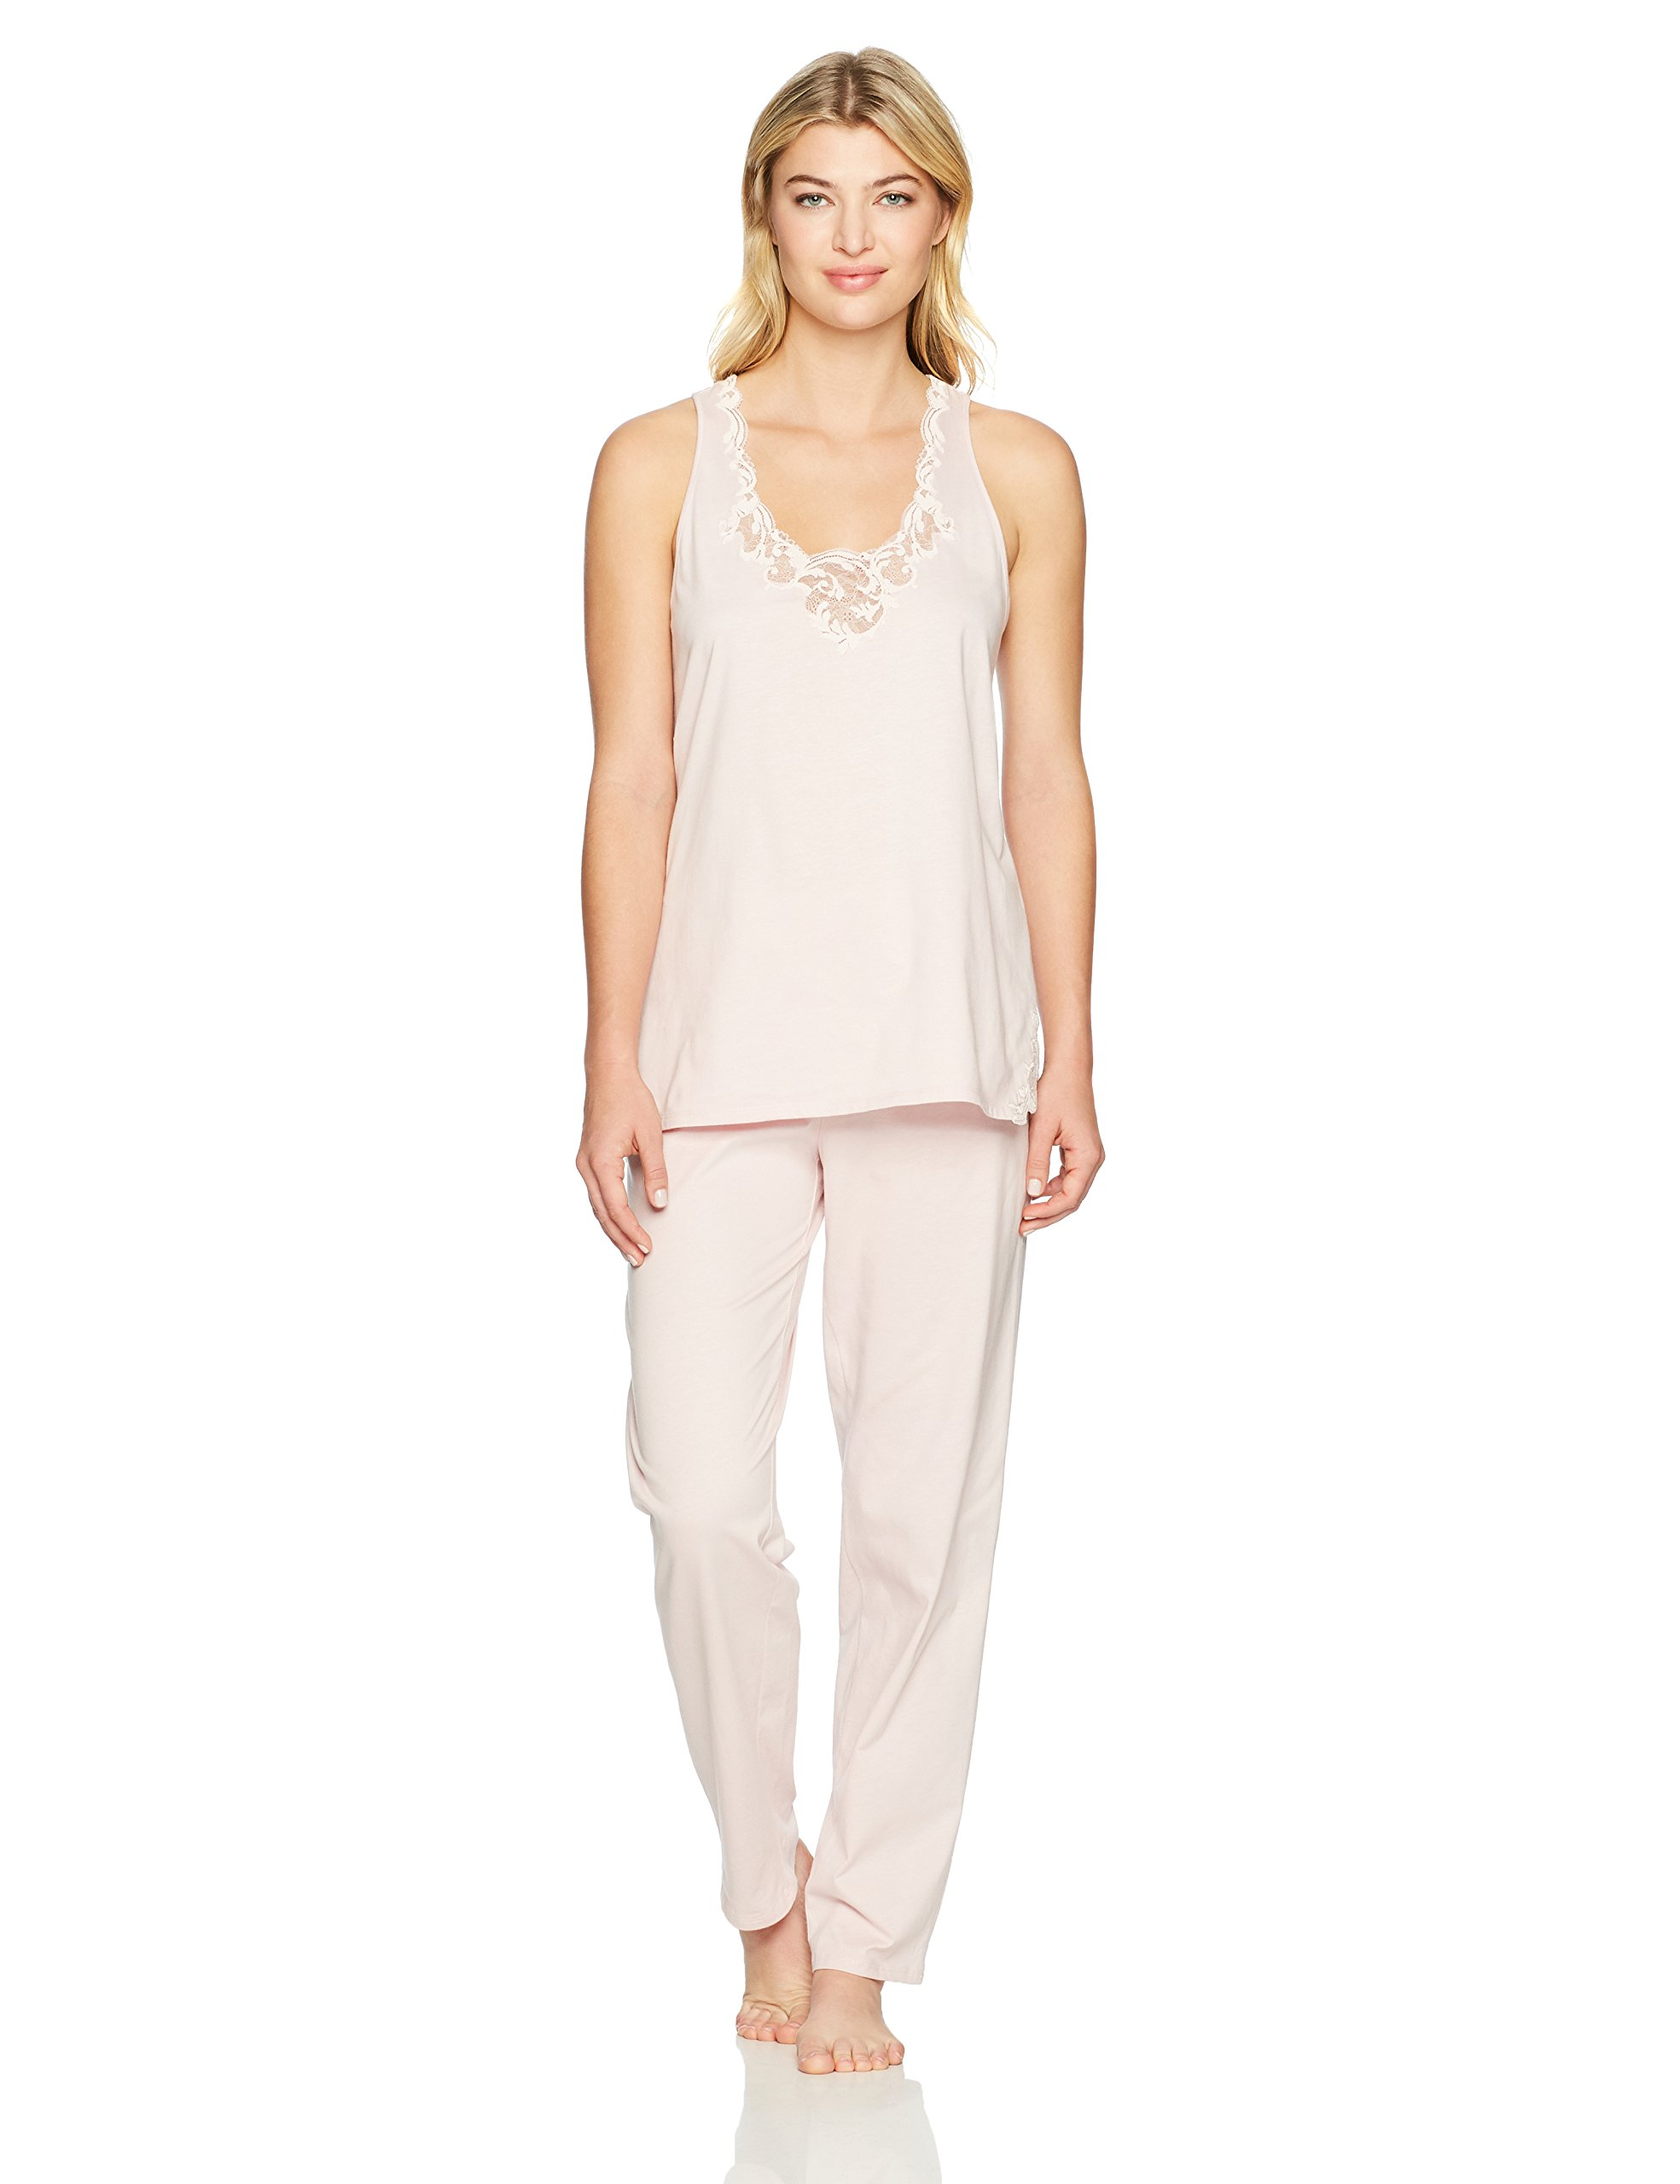 Natori Women's Bliss Cotton with Lace Pj, Dusty Rose, Medium by Natori (Image #1)